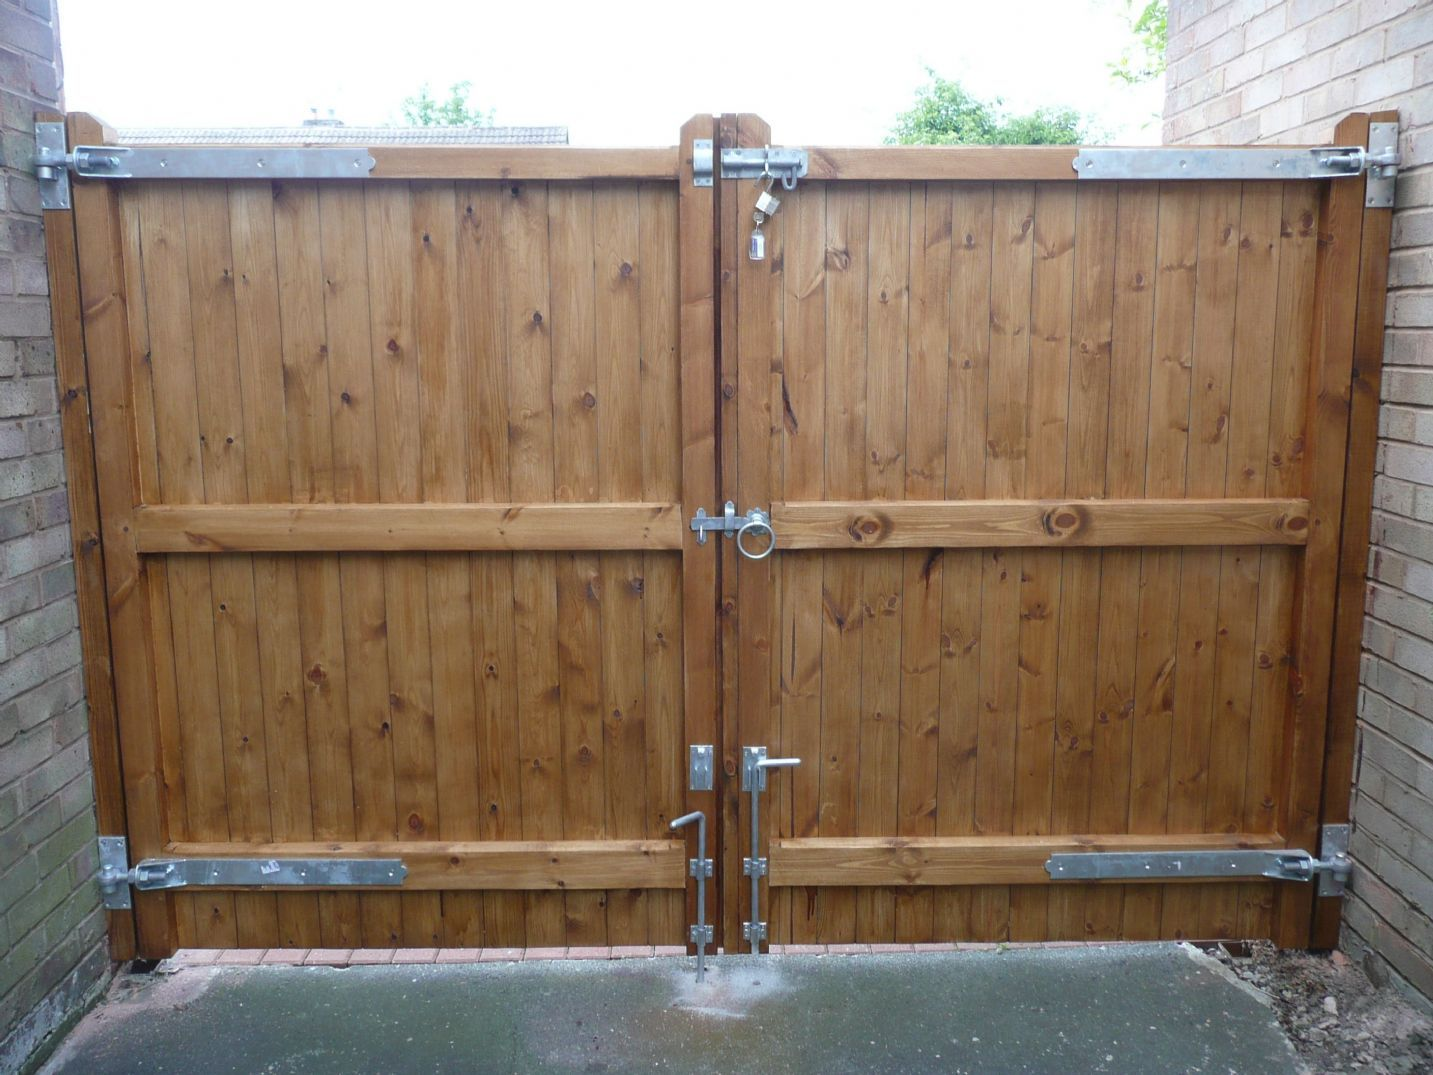 Excellent how to make wooden driveway gates 12 driveway for Driveway gate designs wood